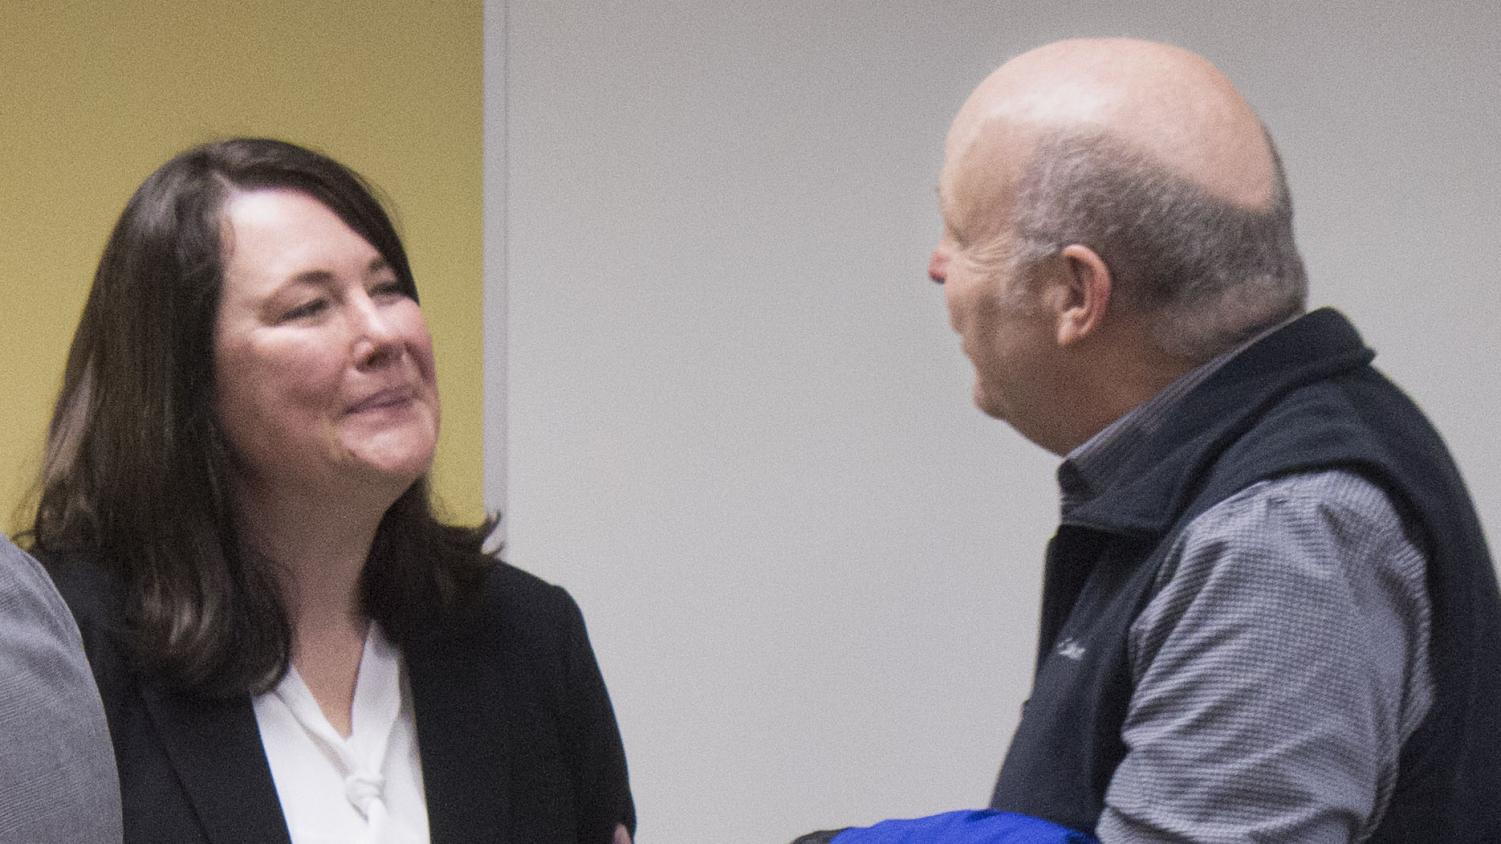 Linda Amundson; a candidate for the dean of the college of education; talked with Director of Housing Mark Hudson after an open session interview Tuesday morning.